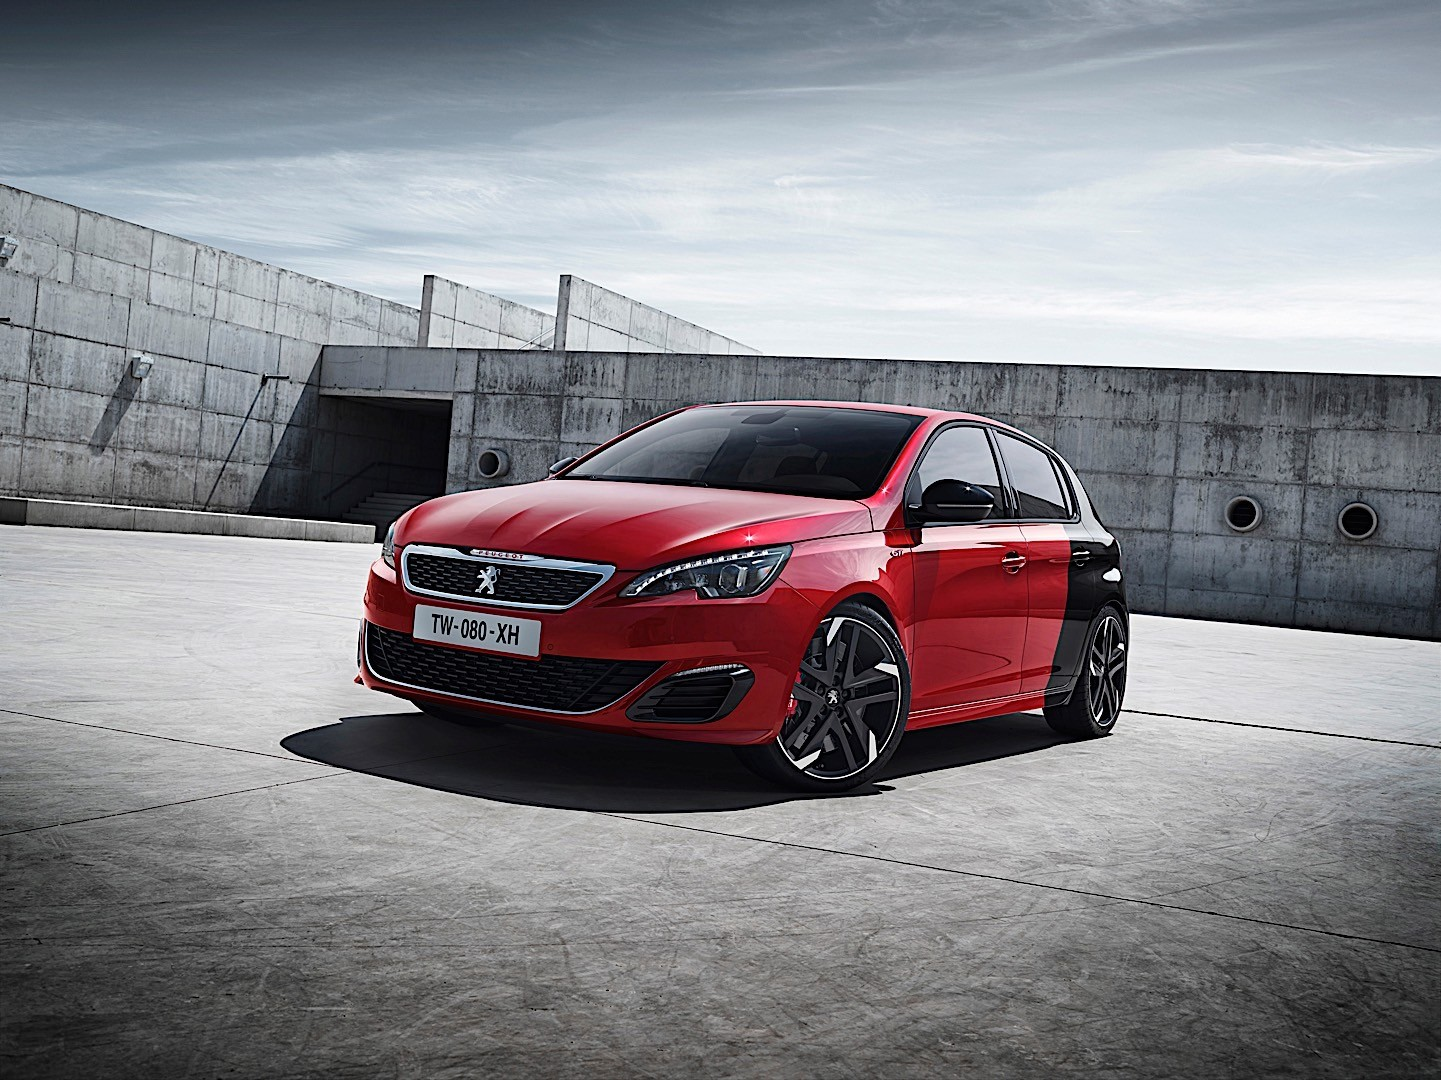 peugeot 308 gti specs photos 2015 2016 2017 autoevolution. Black Bedroom Furniture Sets. Home Design Ideas